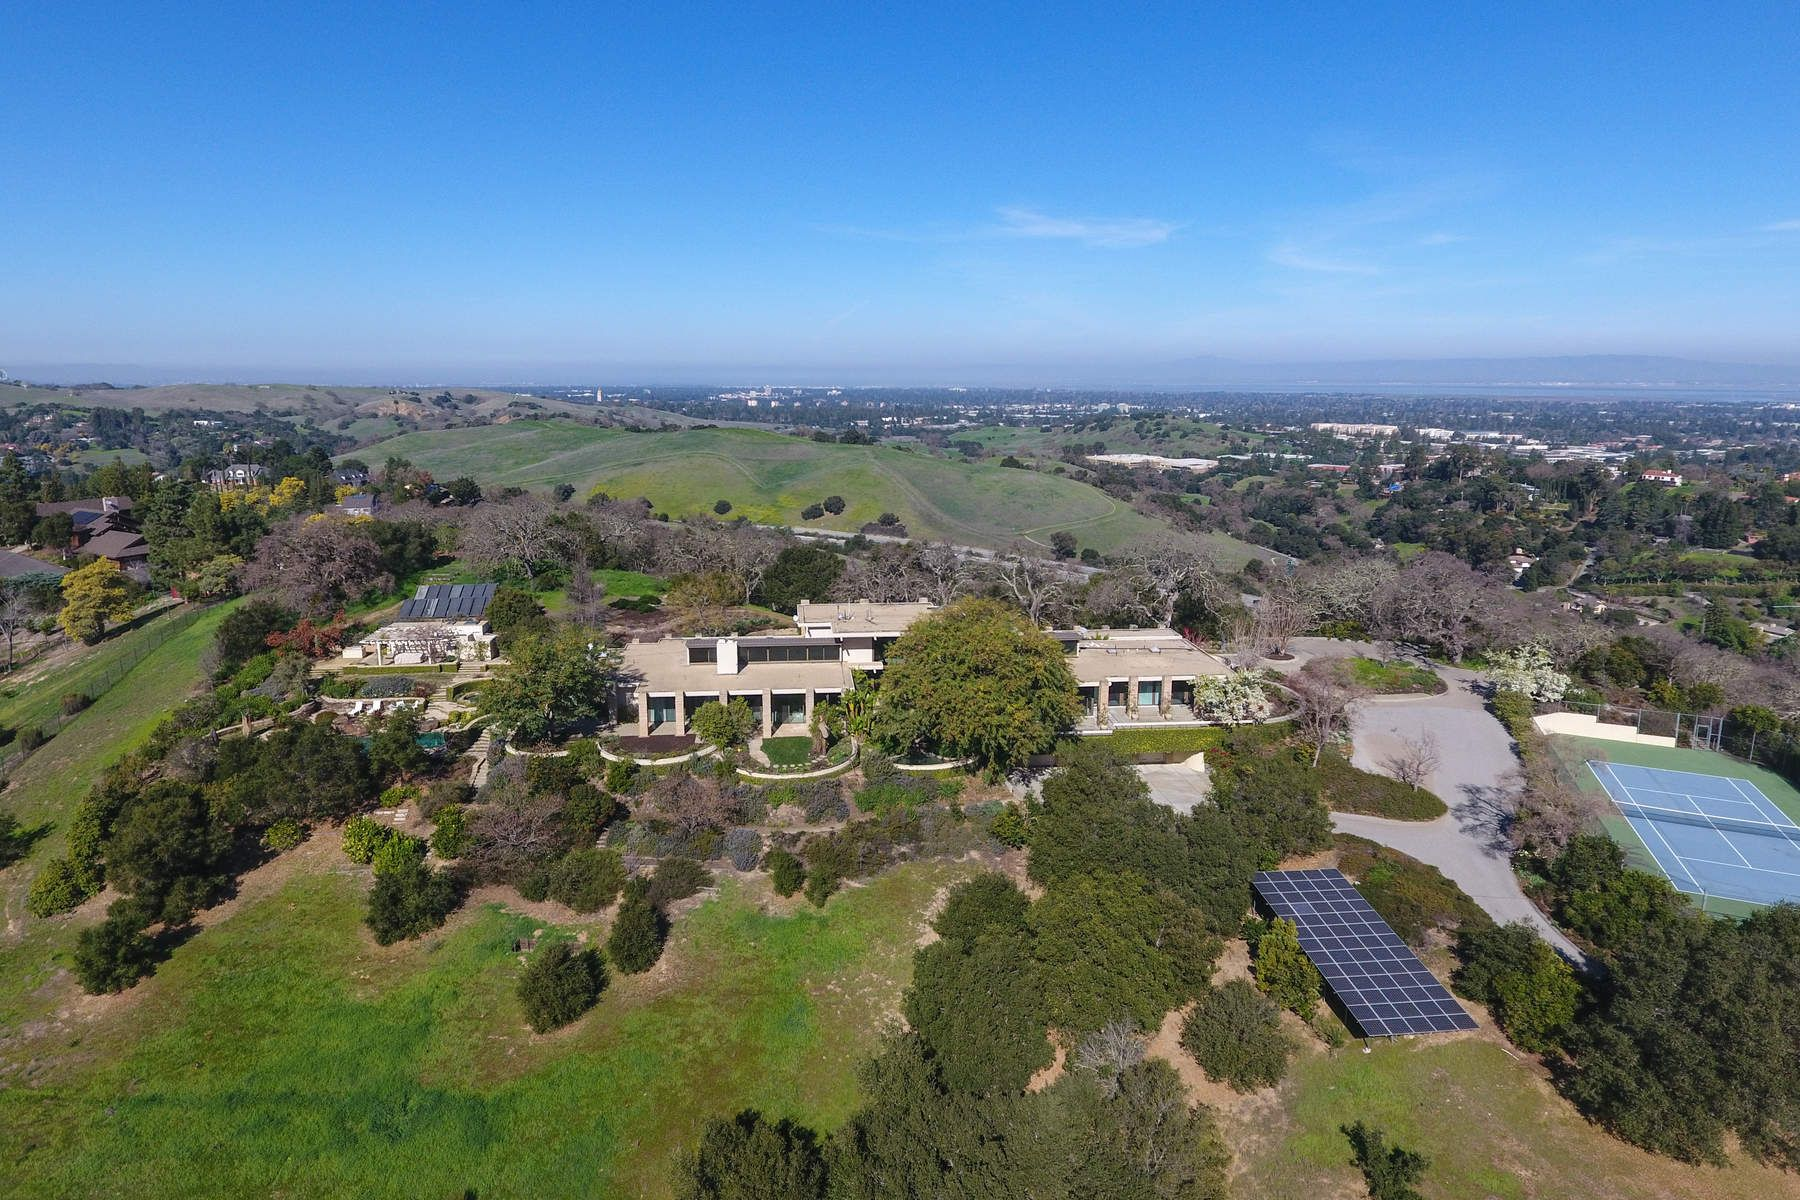 Additional photo for property listing at Approx. 48 Acres - Los Altos Hills  Los Altos Hills, California 94022 United States